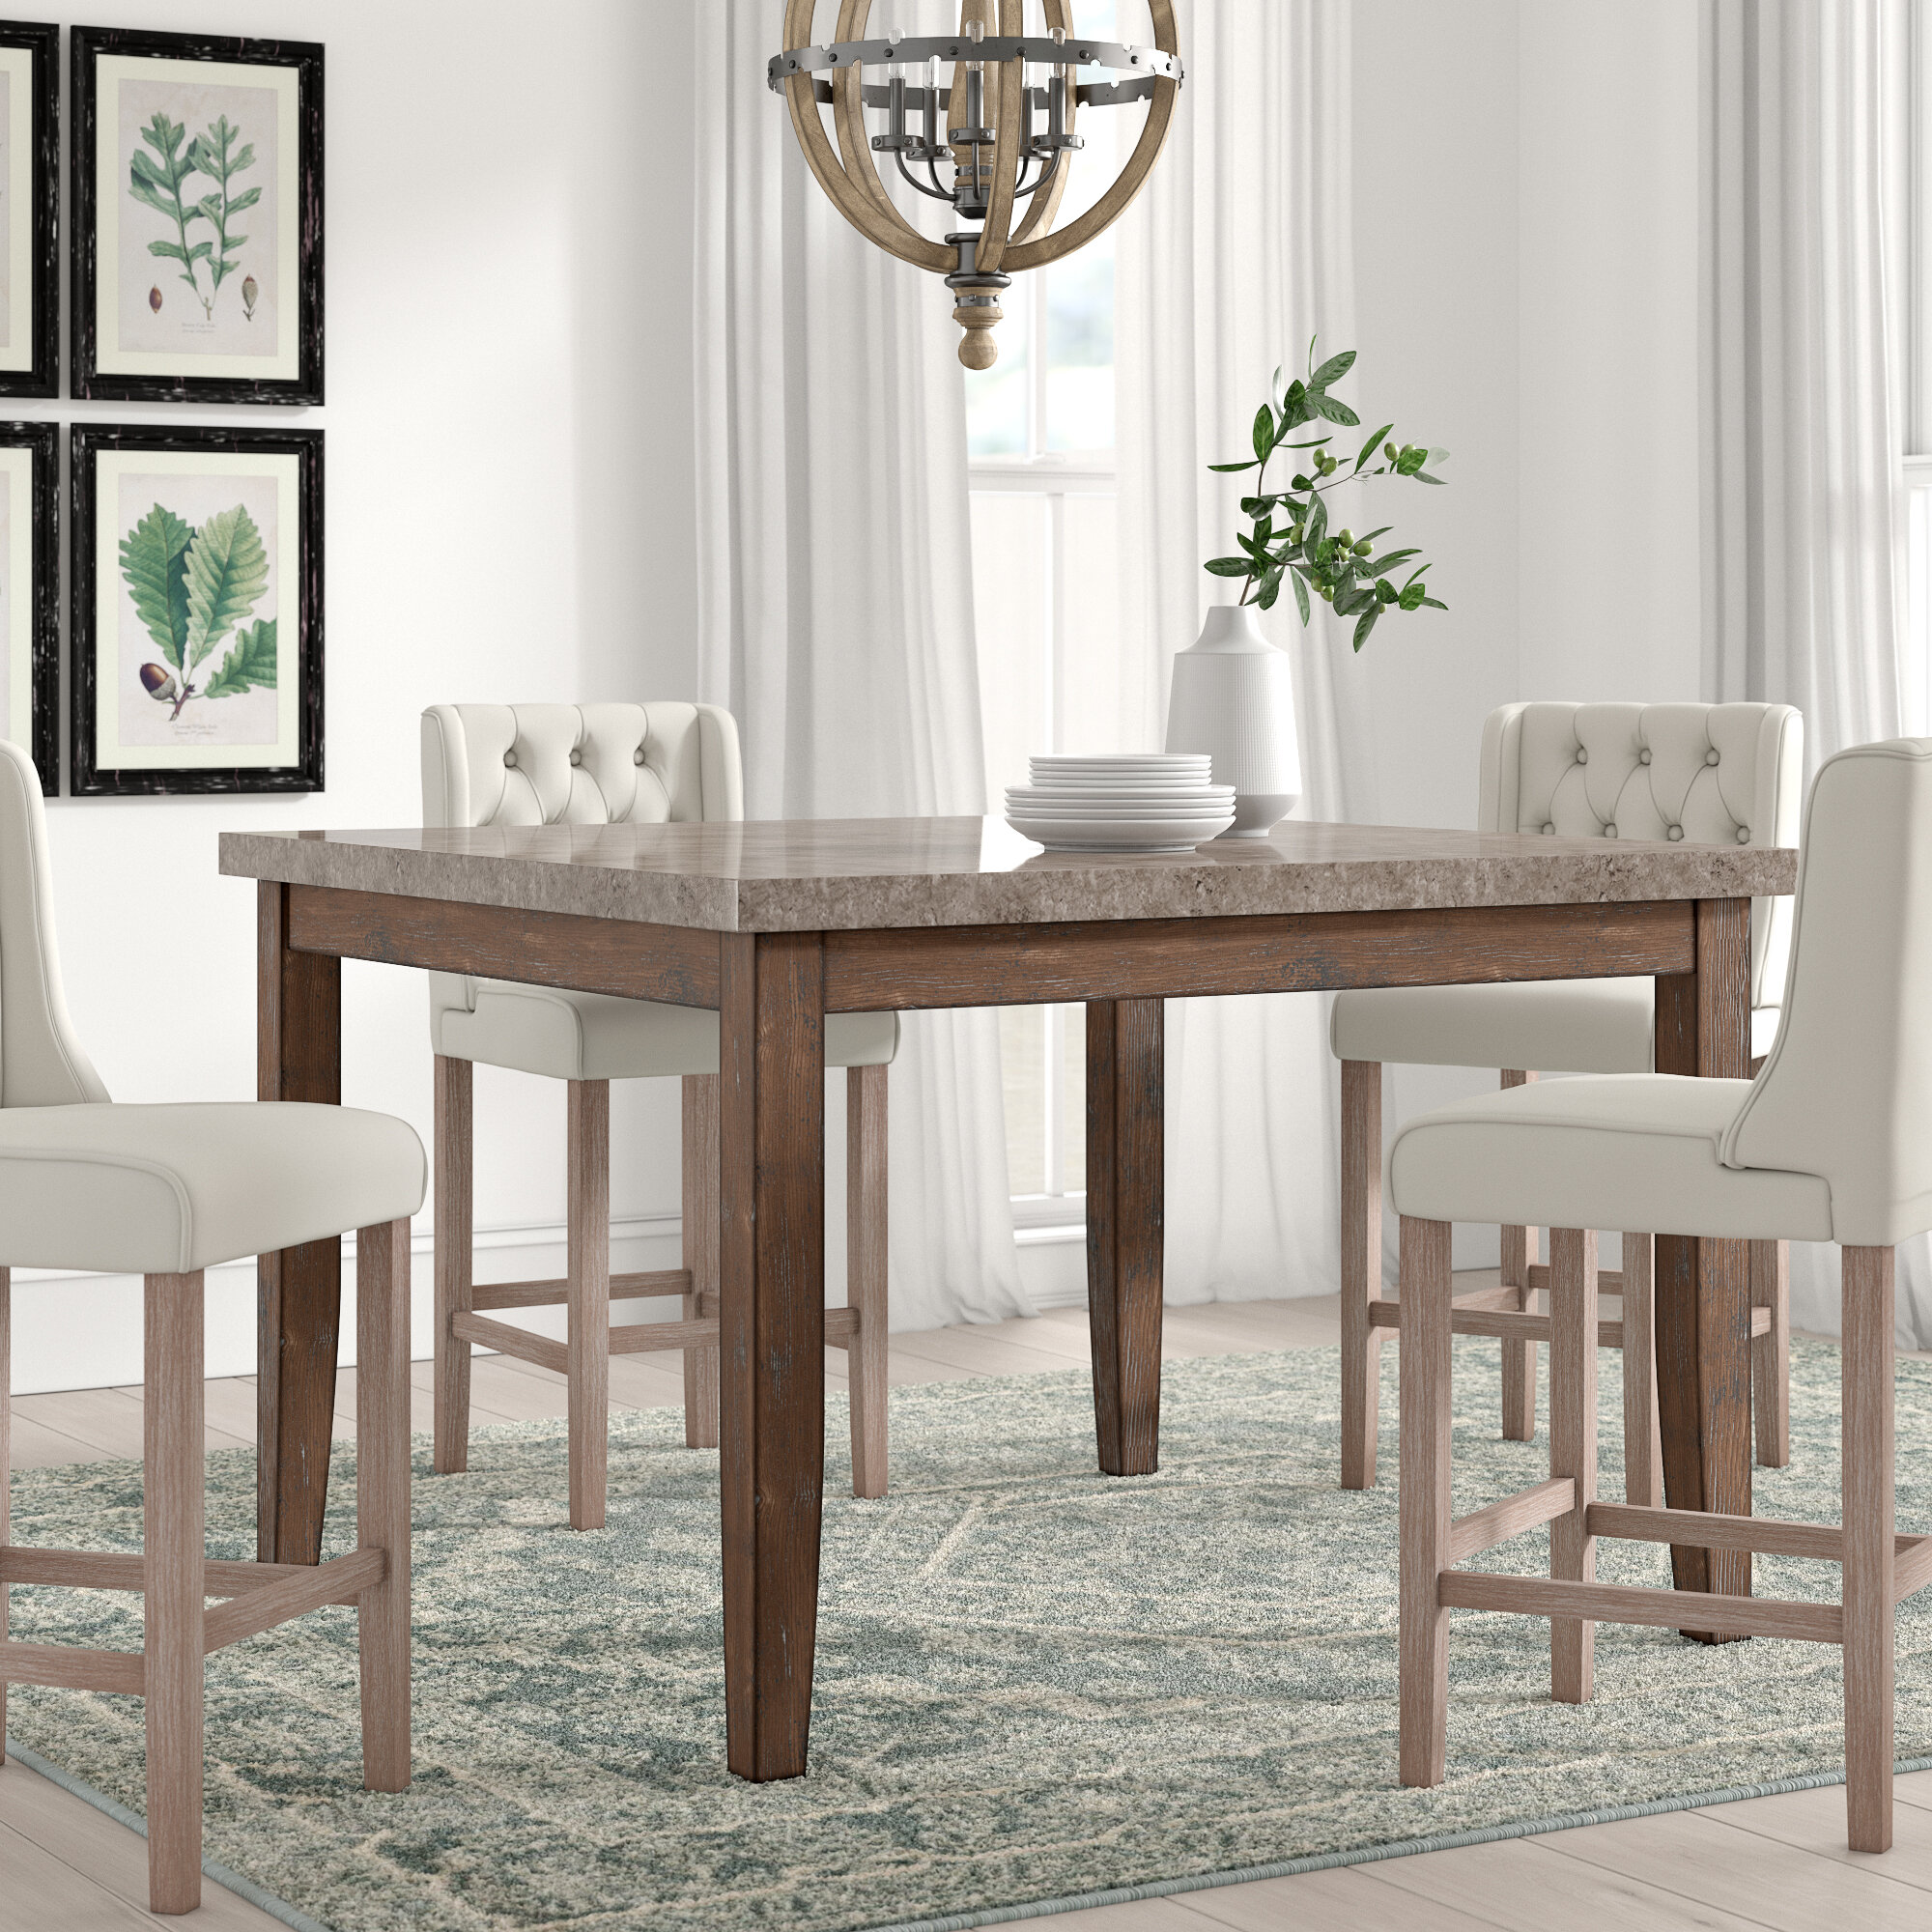 Clearmont Counter Height Dining Table